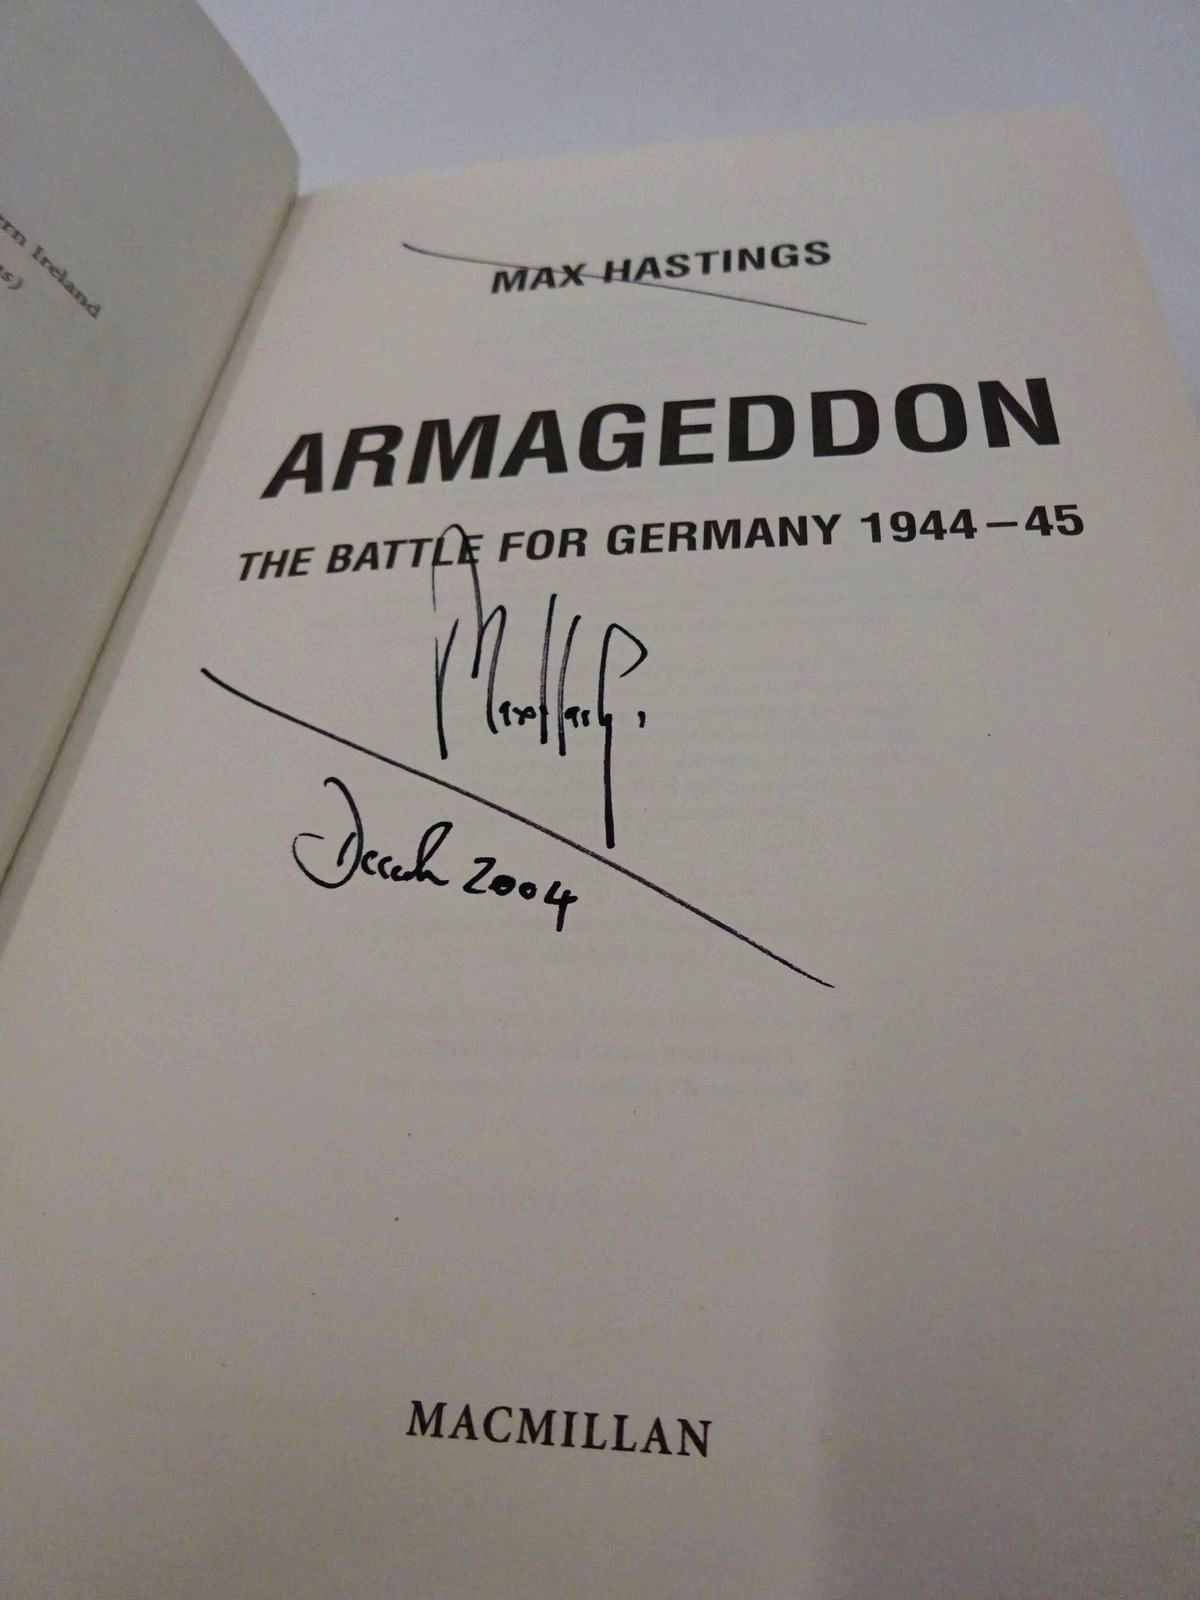 Photo of ARMAGEDDON: THE BATTLE FOR GERMANY 1944-45 written by Hastings, Max published by MacMillan (STOCK CODE: 1815550)  for sale by Stella & Rose's Books